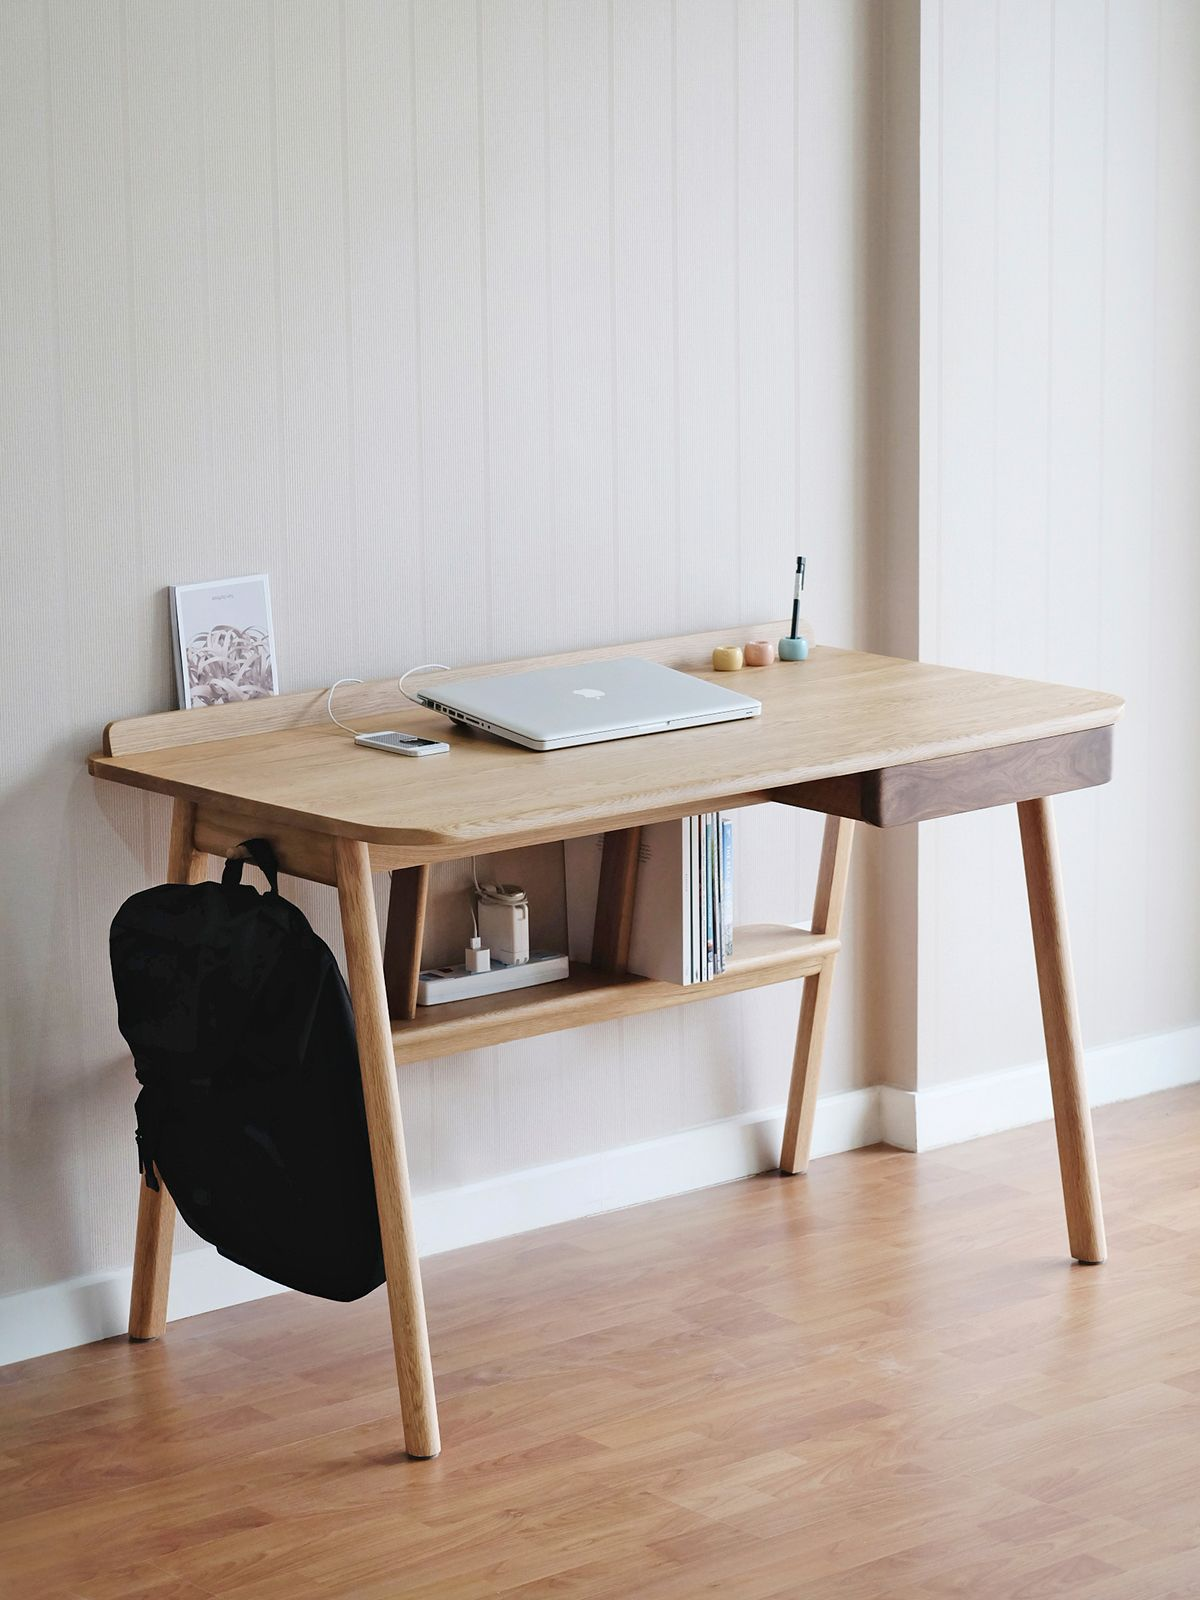 study room, wooden floor, cream wall, wooden table with shelves under the table